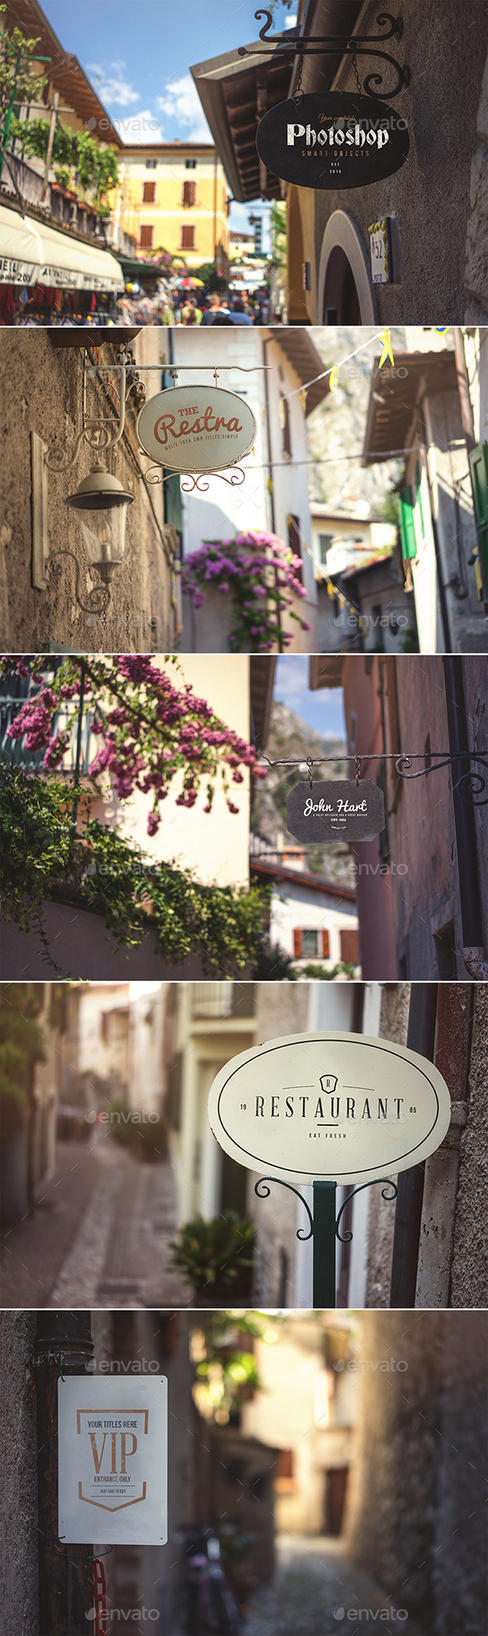 Shop Signs - Realistic Mock Up by DOMDESIGN